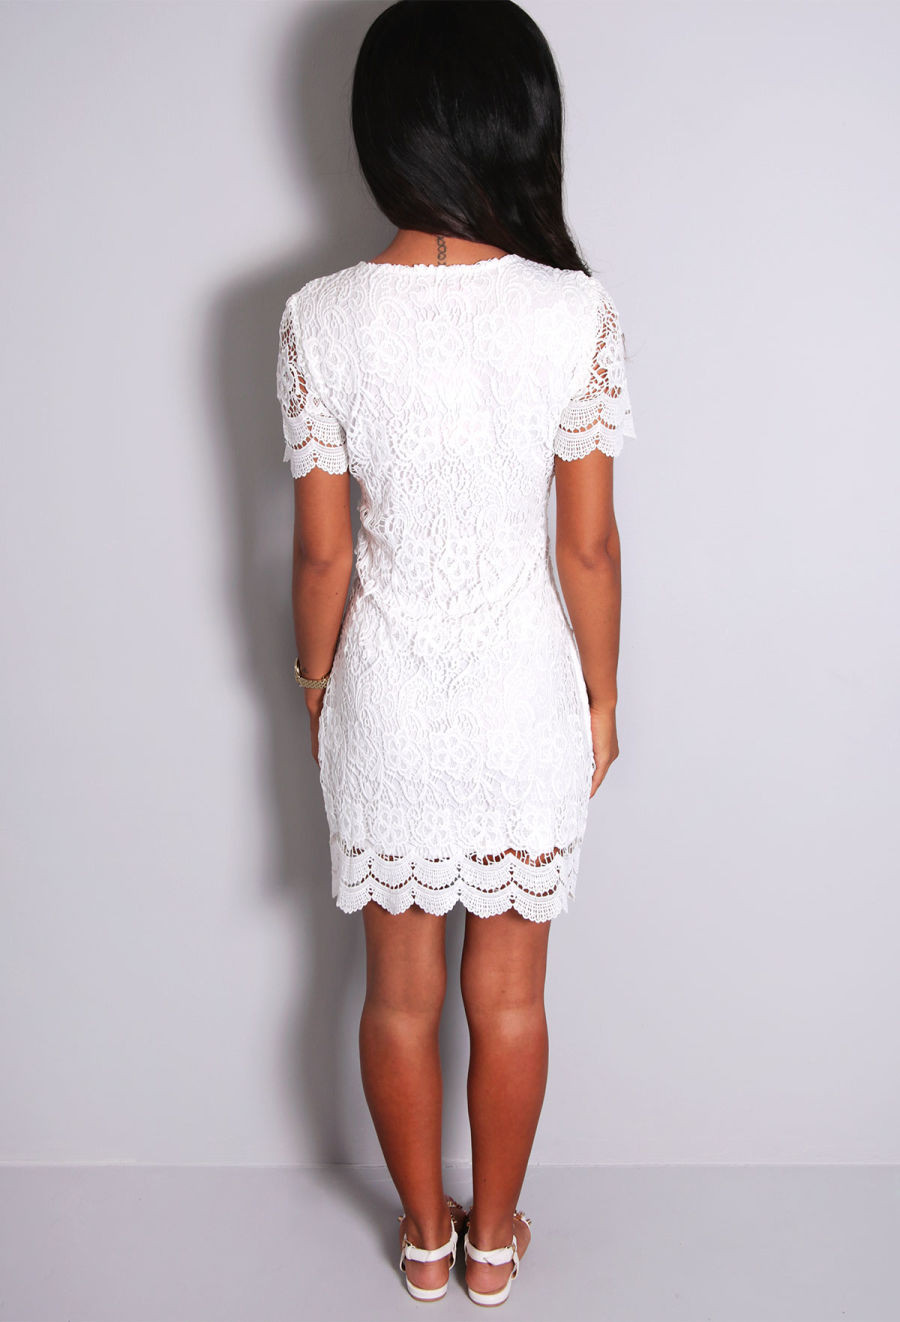 White Lace Crochet Dress Unique Monalisa White Lace Crochet Mini Dress Of Awesome 48 Photos White Lace Crochet Dress